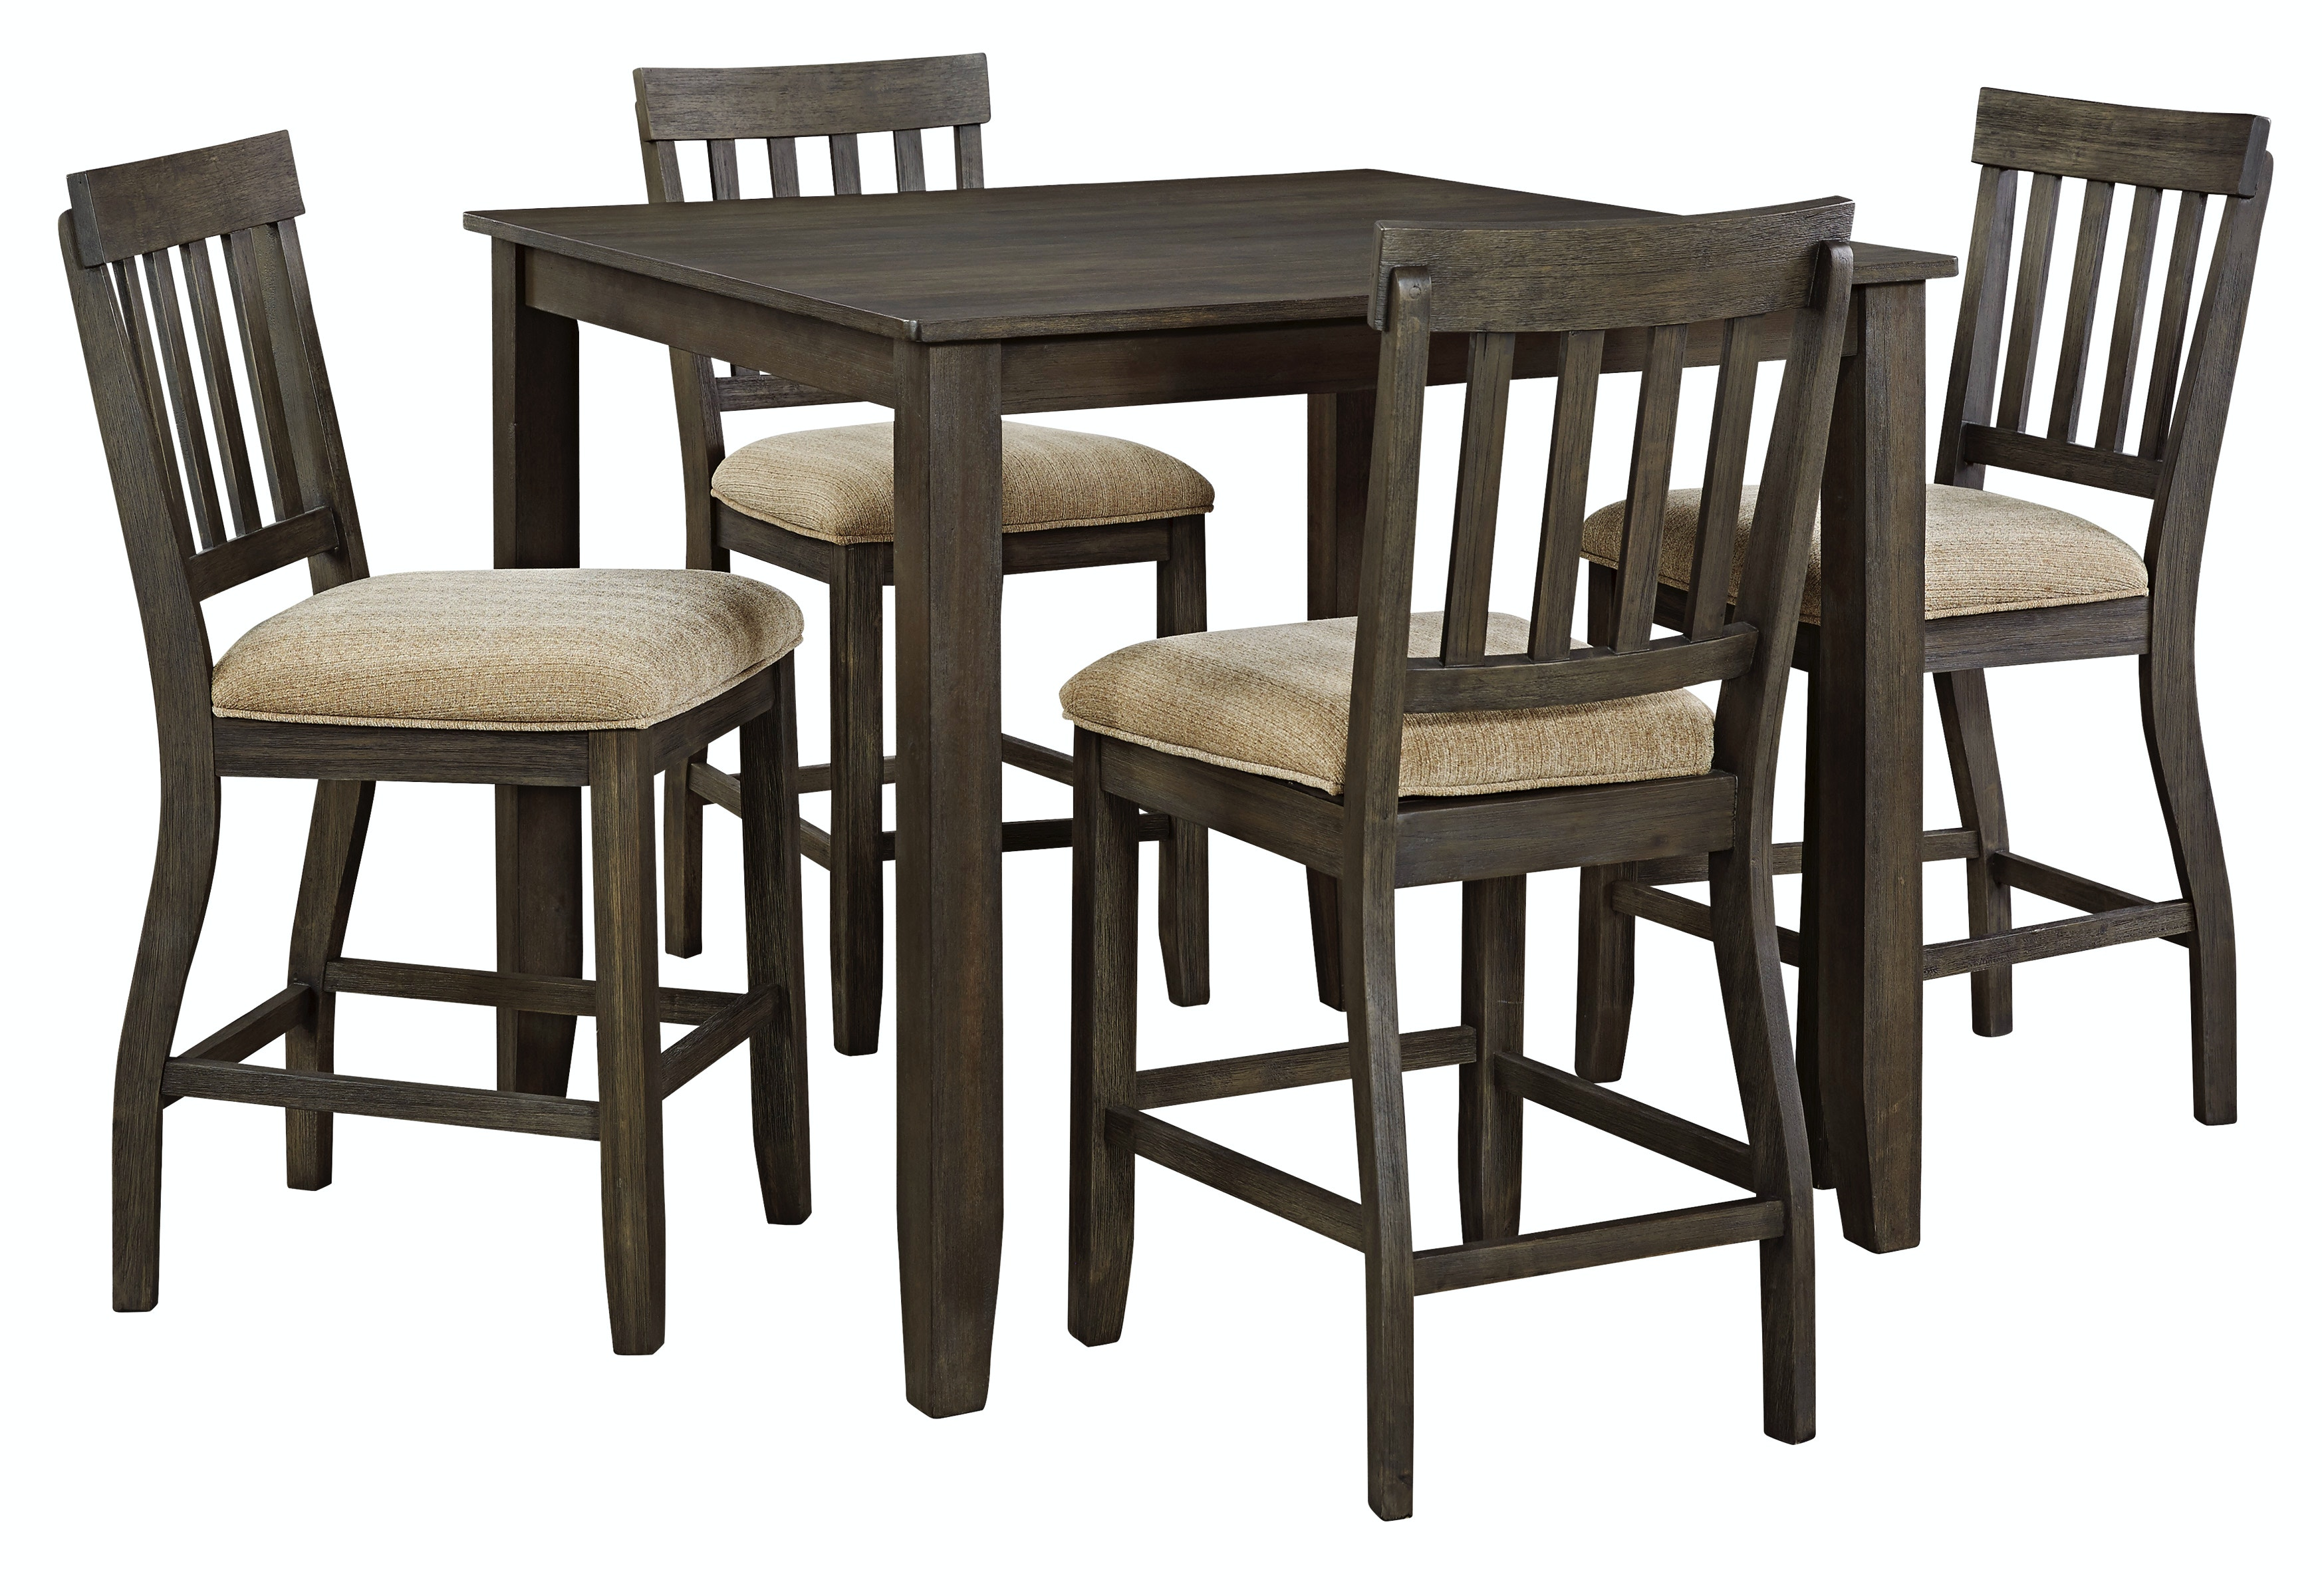 D485 Counter Tbl/4 Chairs. Dresbar 5pc Counter Dining Room Set